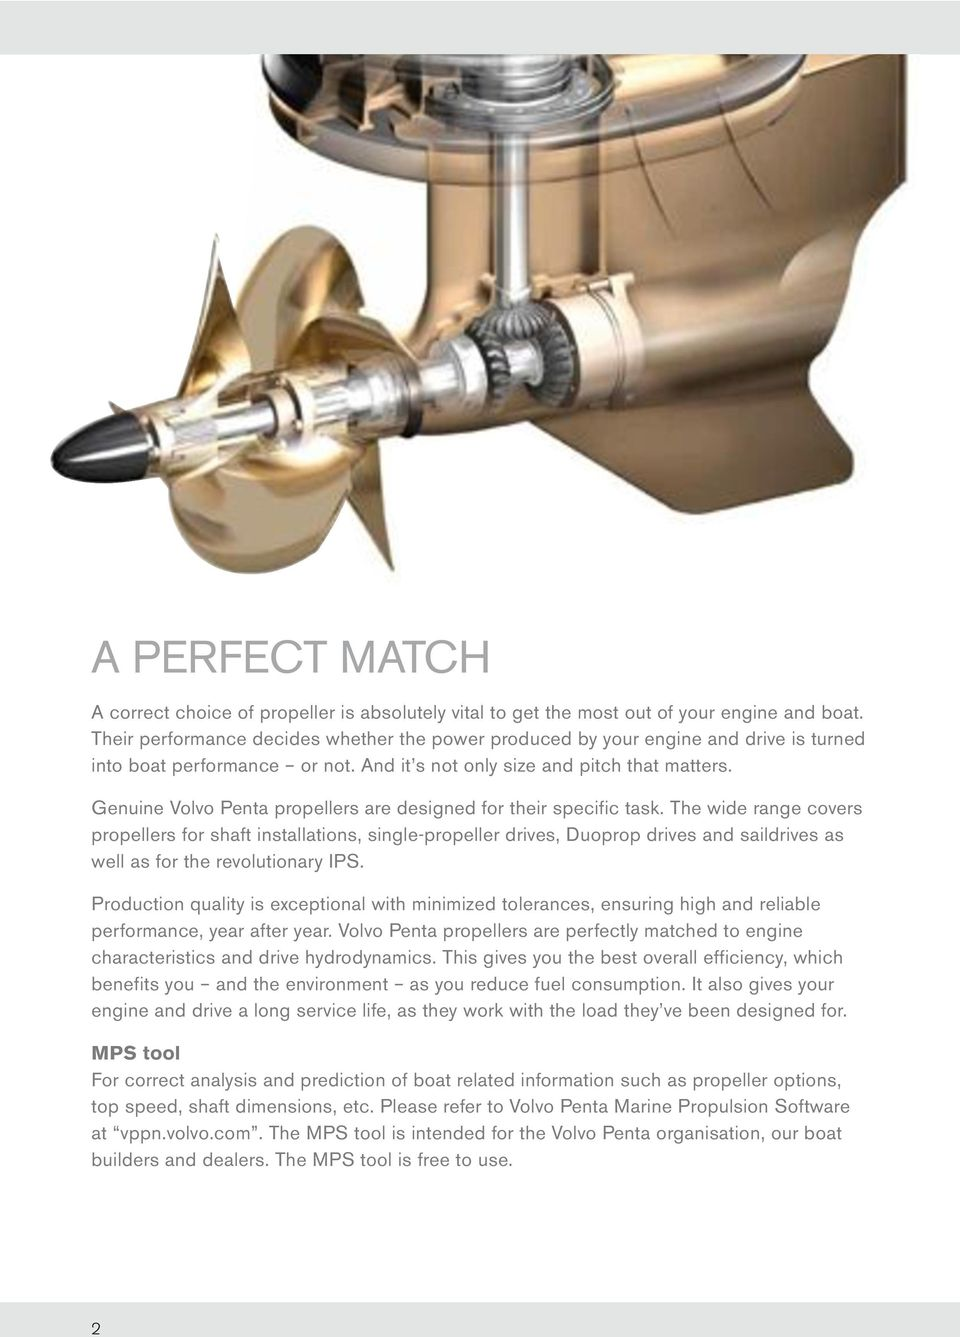 Genuine Volvo Penta propellers are designed for their specific task.